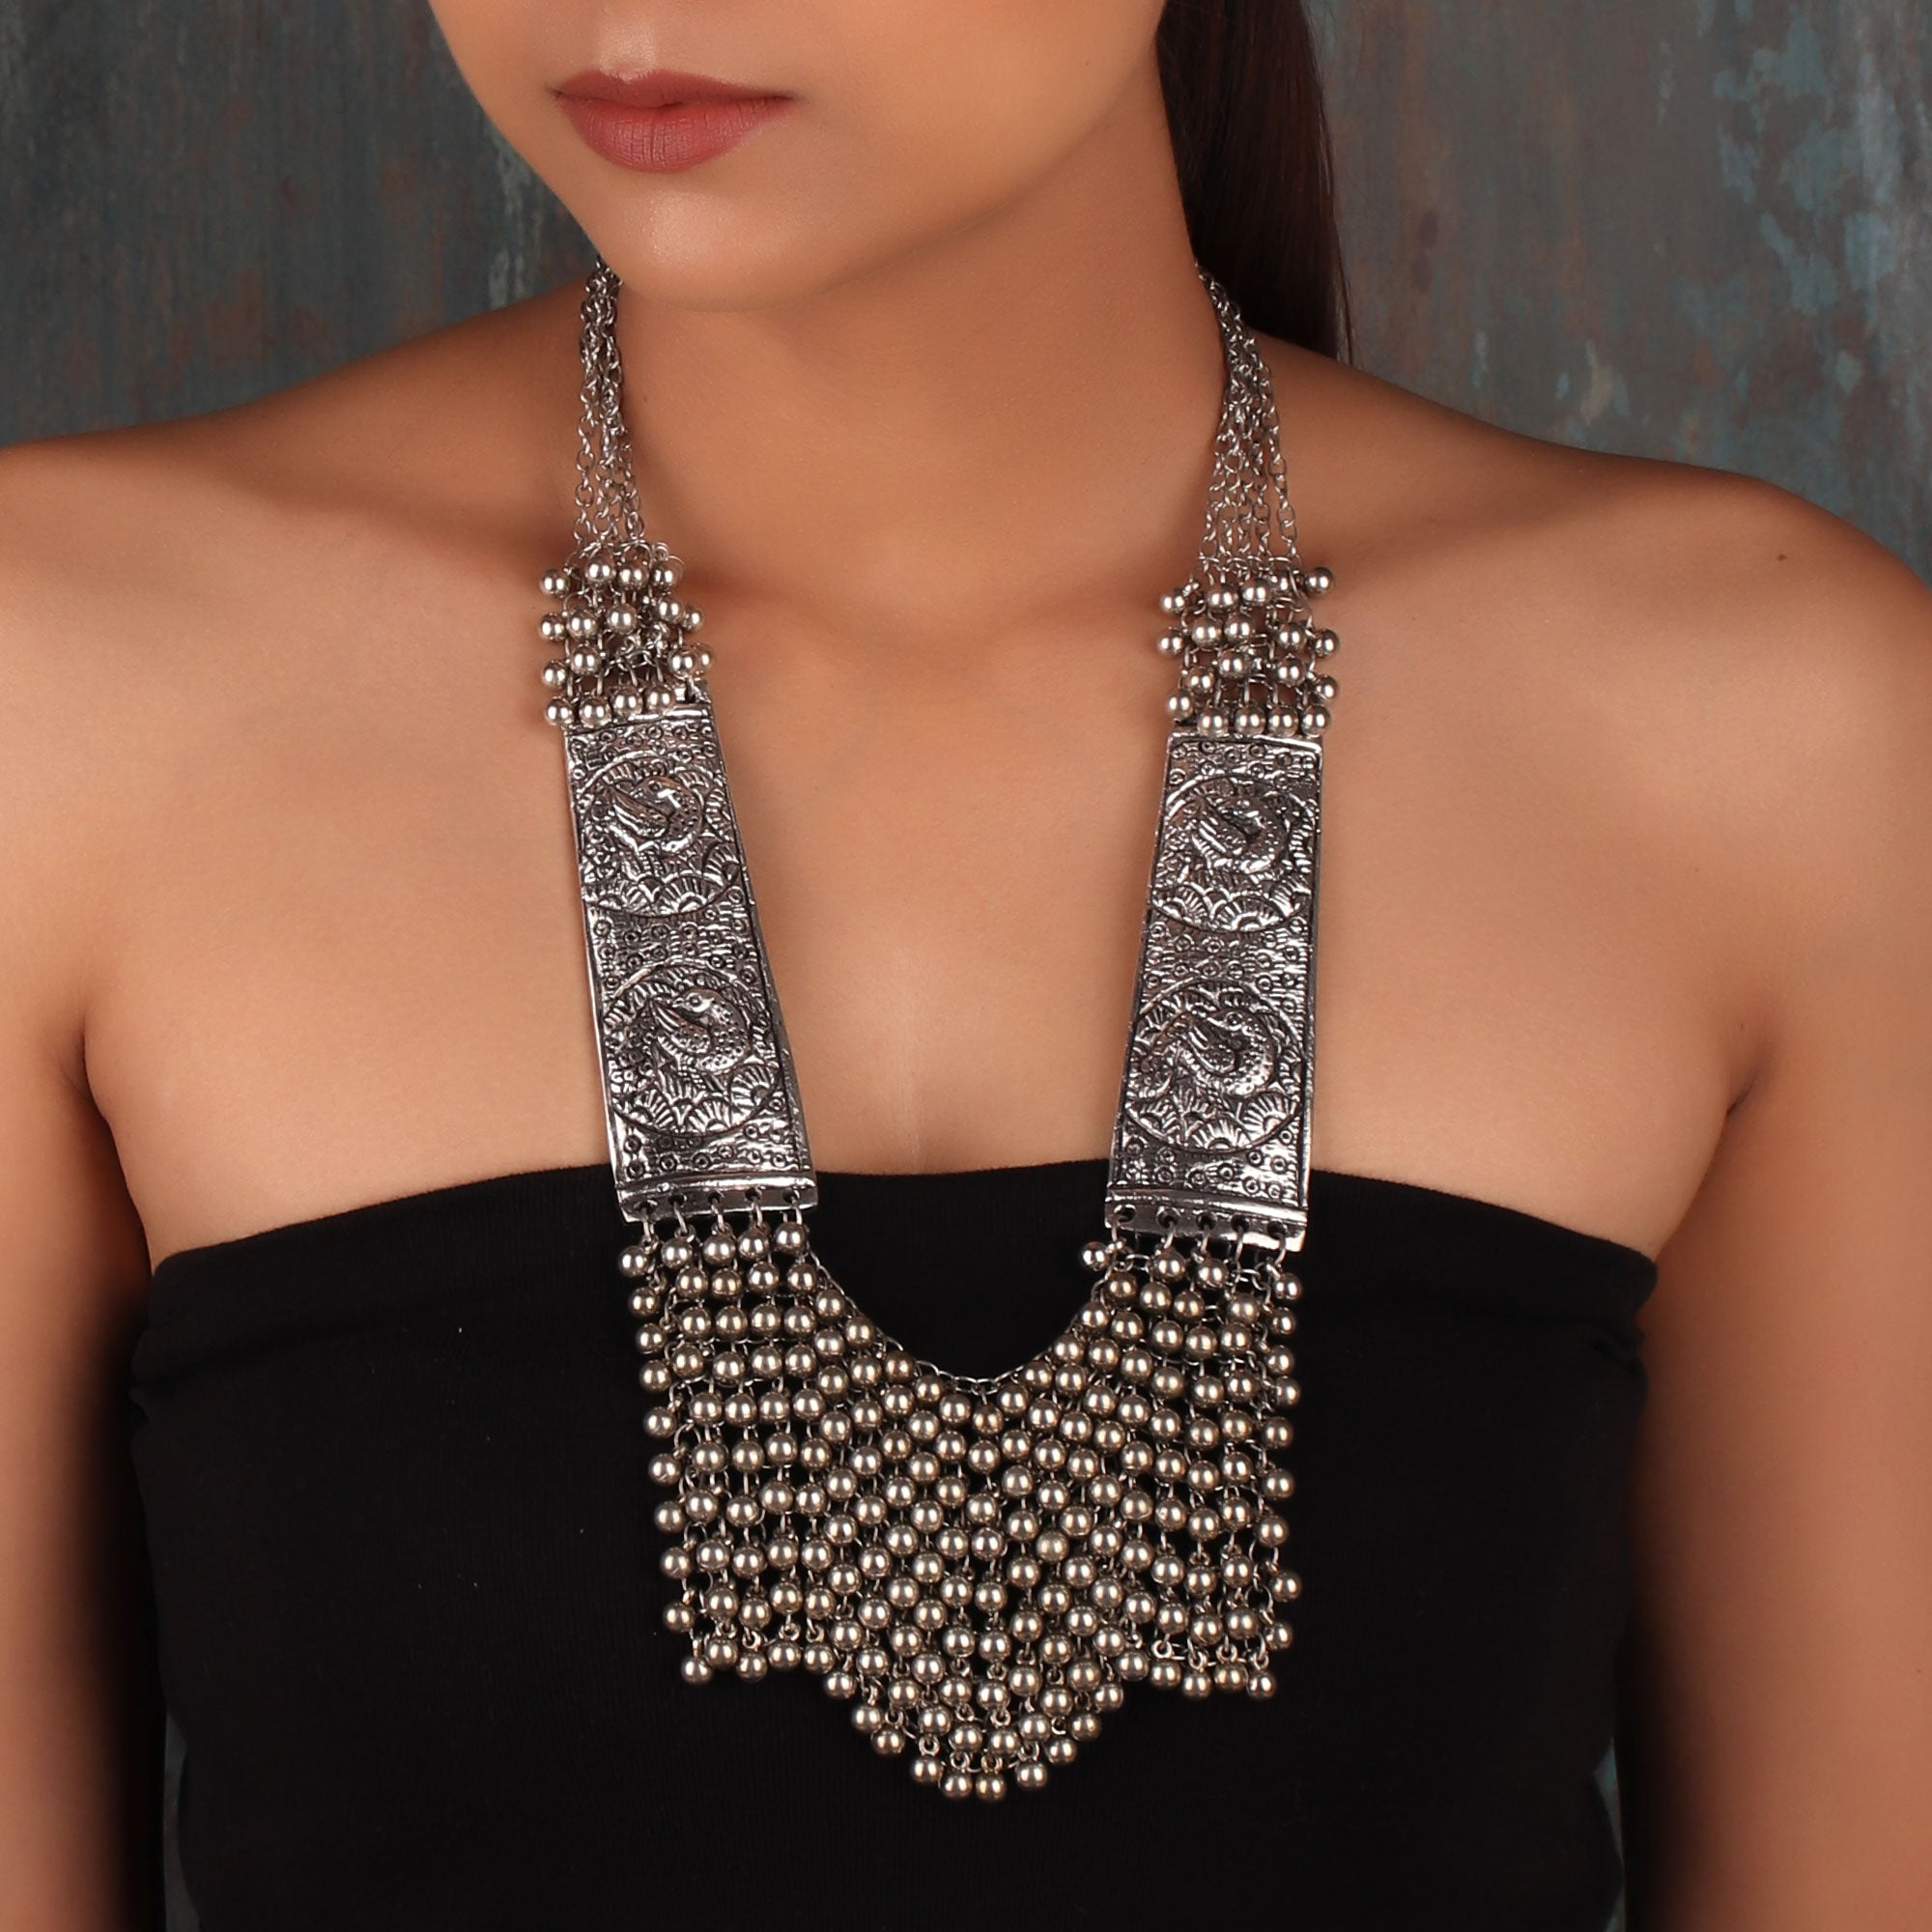 Necklace,The Egyptian beaded Princess Necklace in Oxidized Silver - Cippele Multi Store